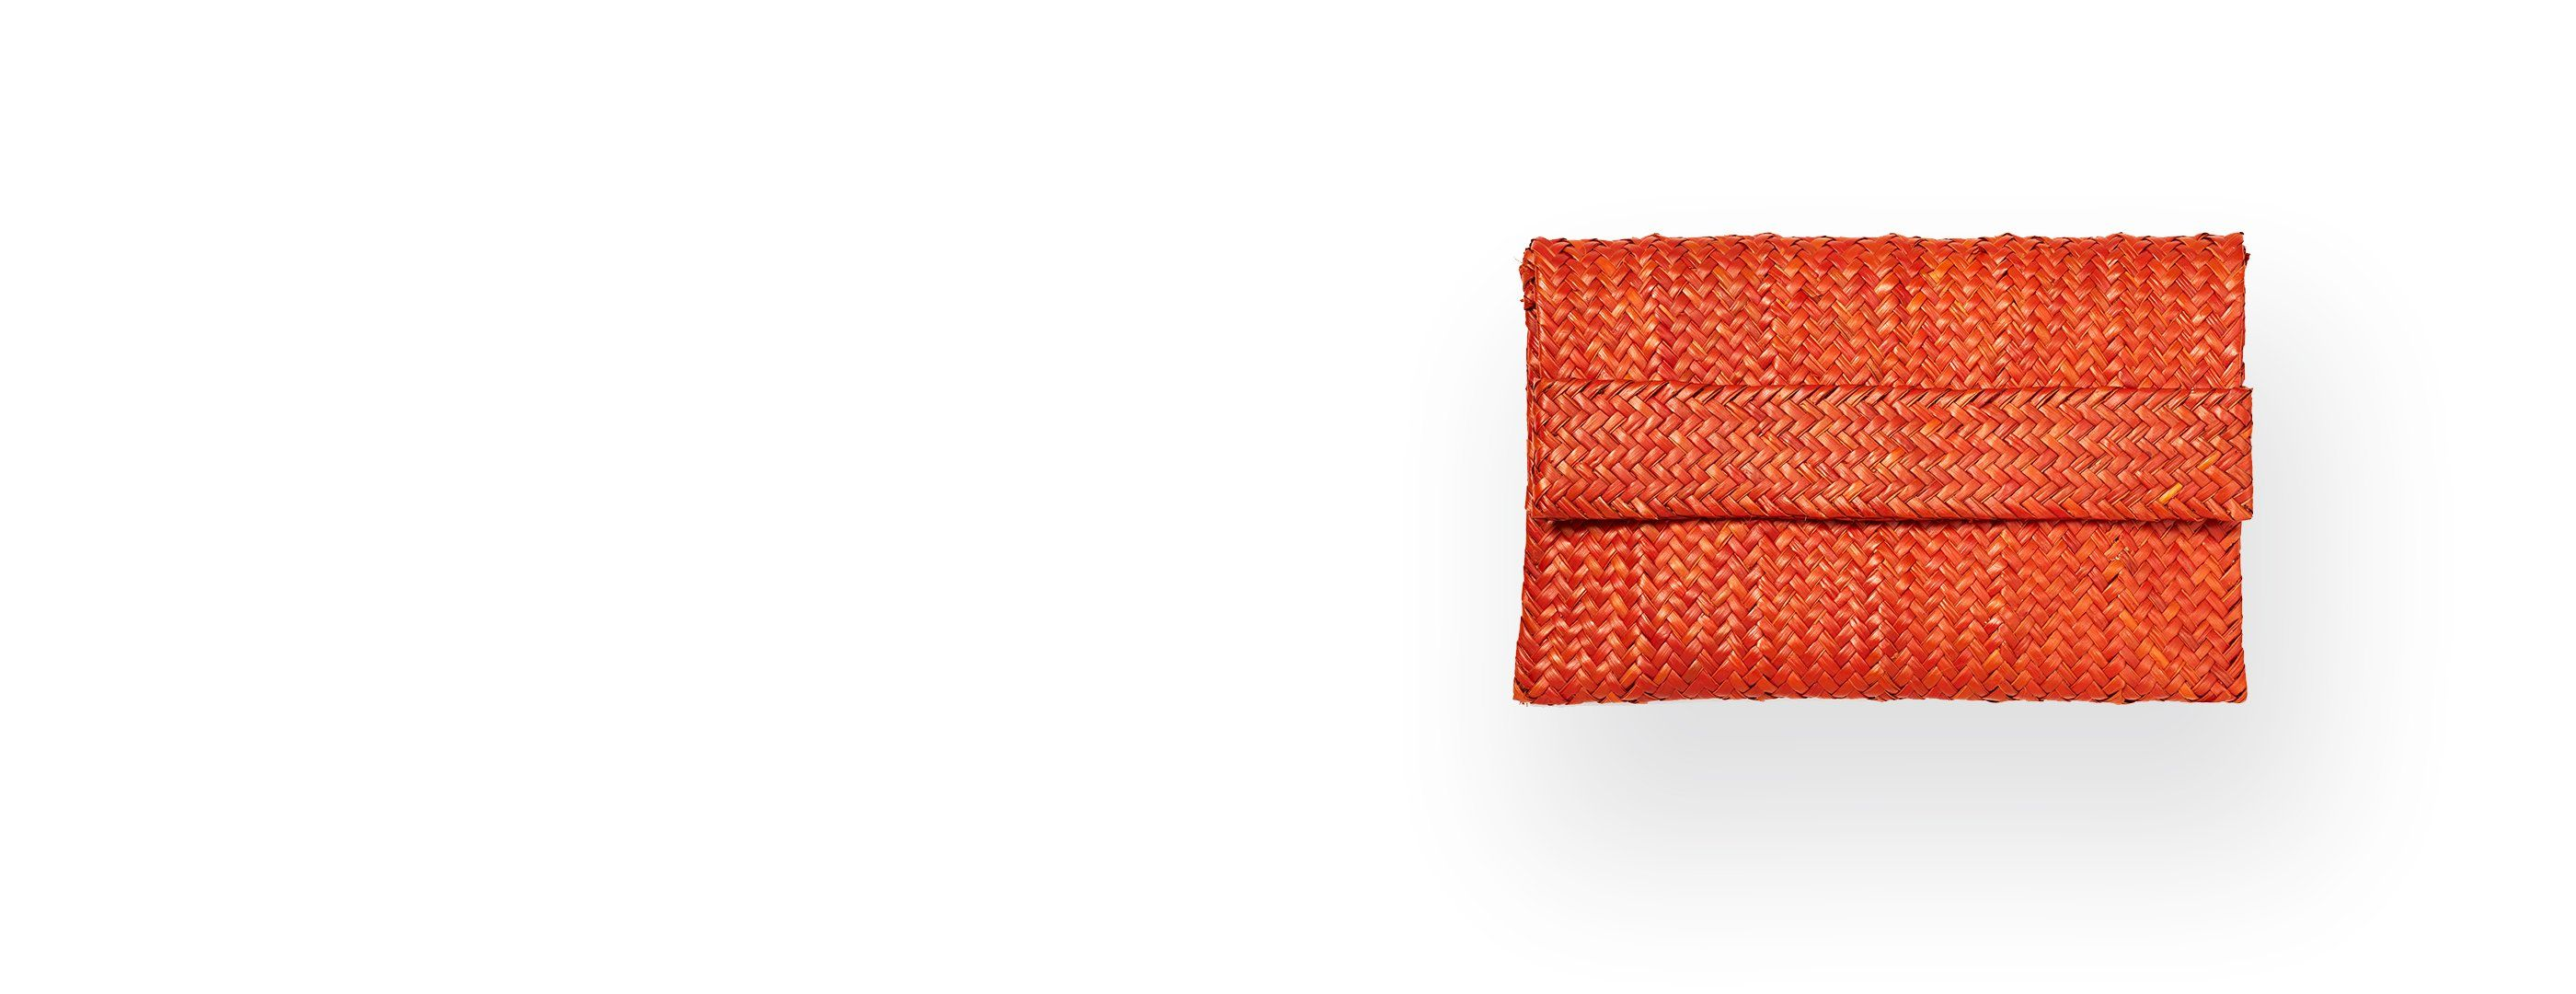 Orange Raffia Clutch Gallery